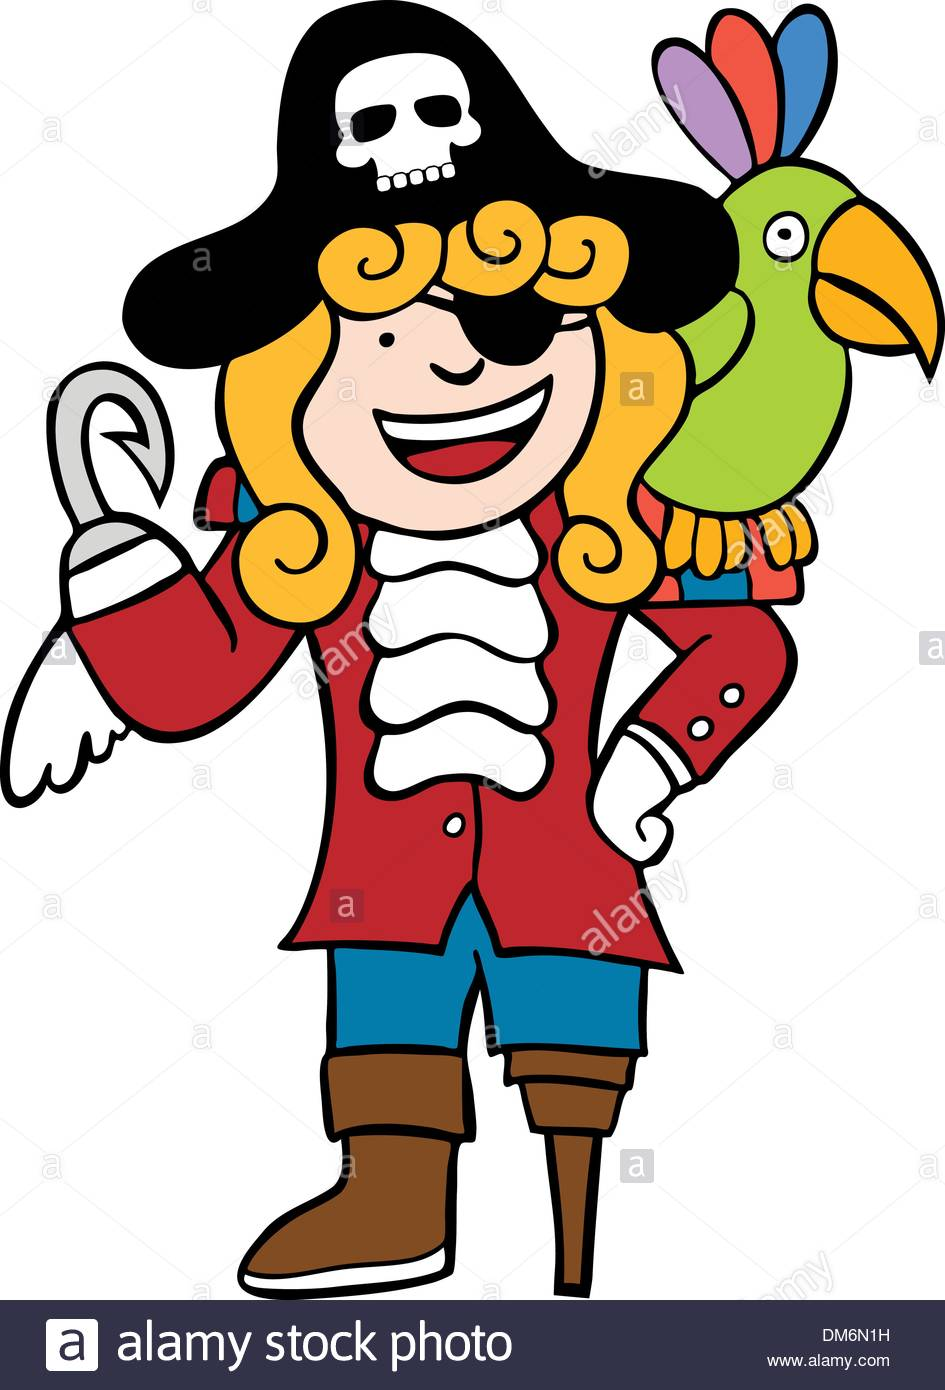 Friendly Pirate with Parrot Stock Vector Art & Illustration, Vector.